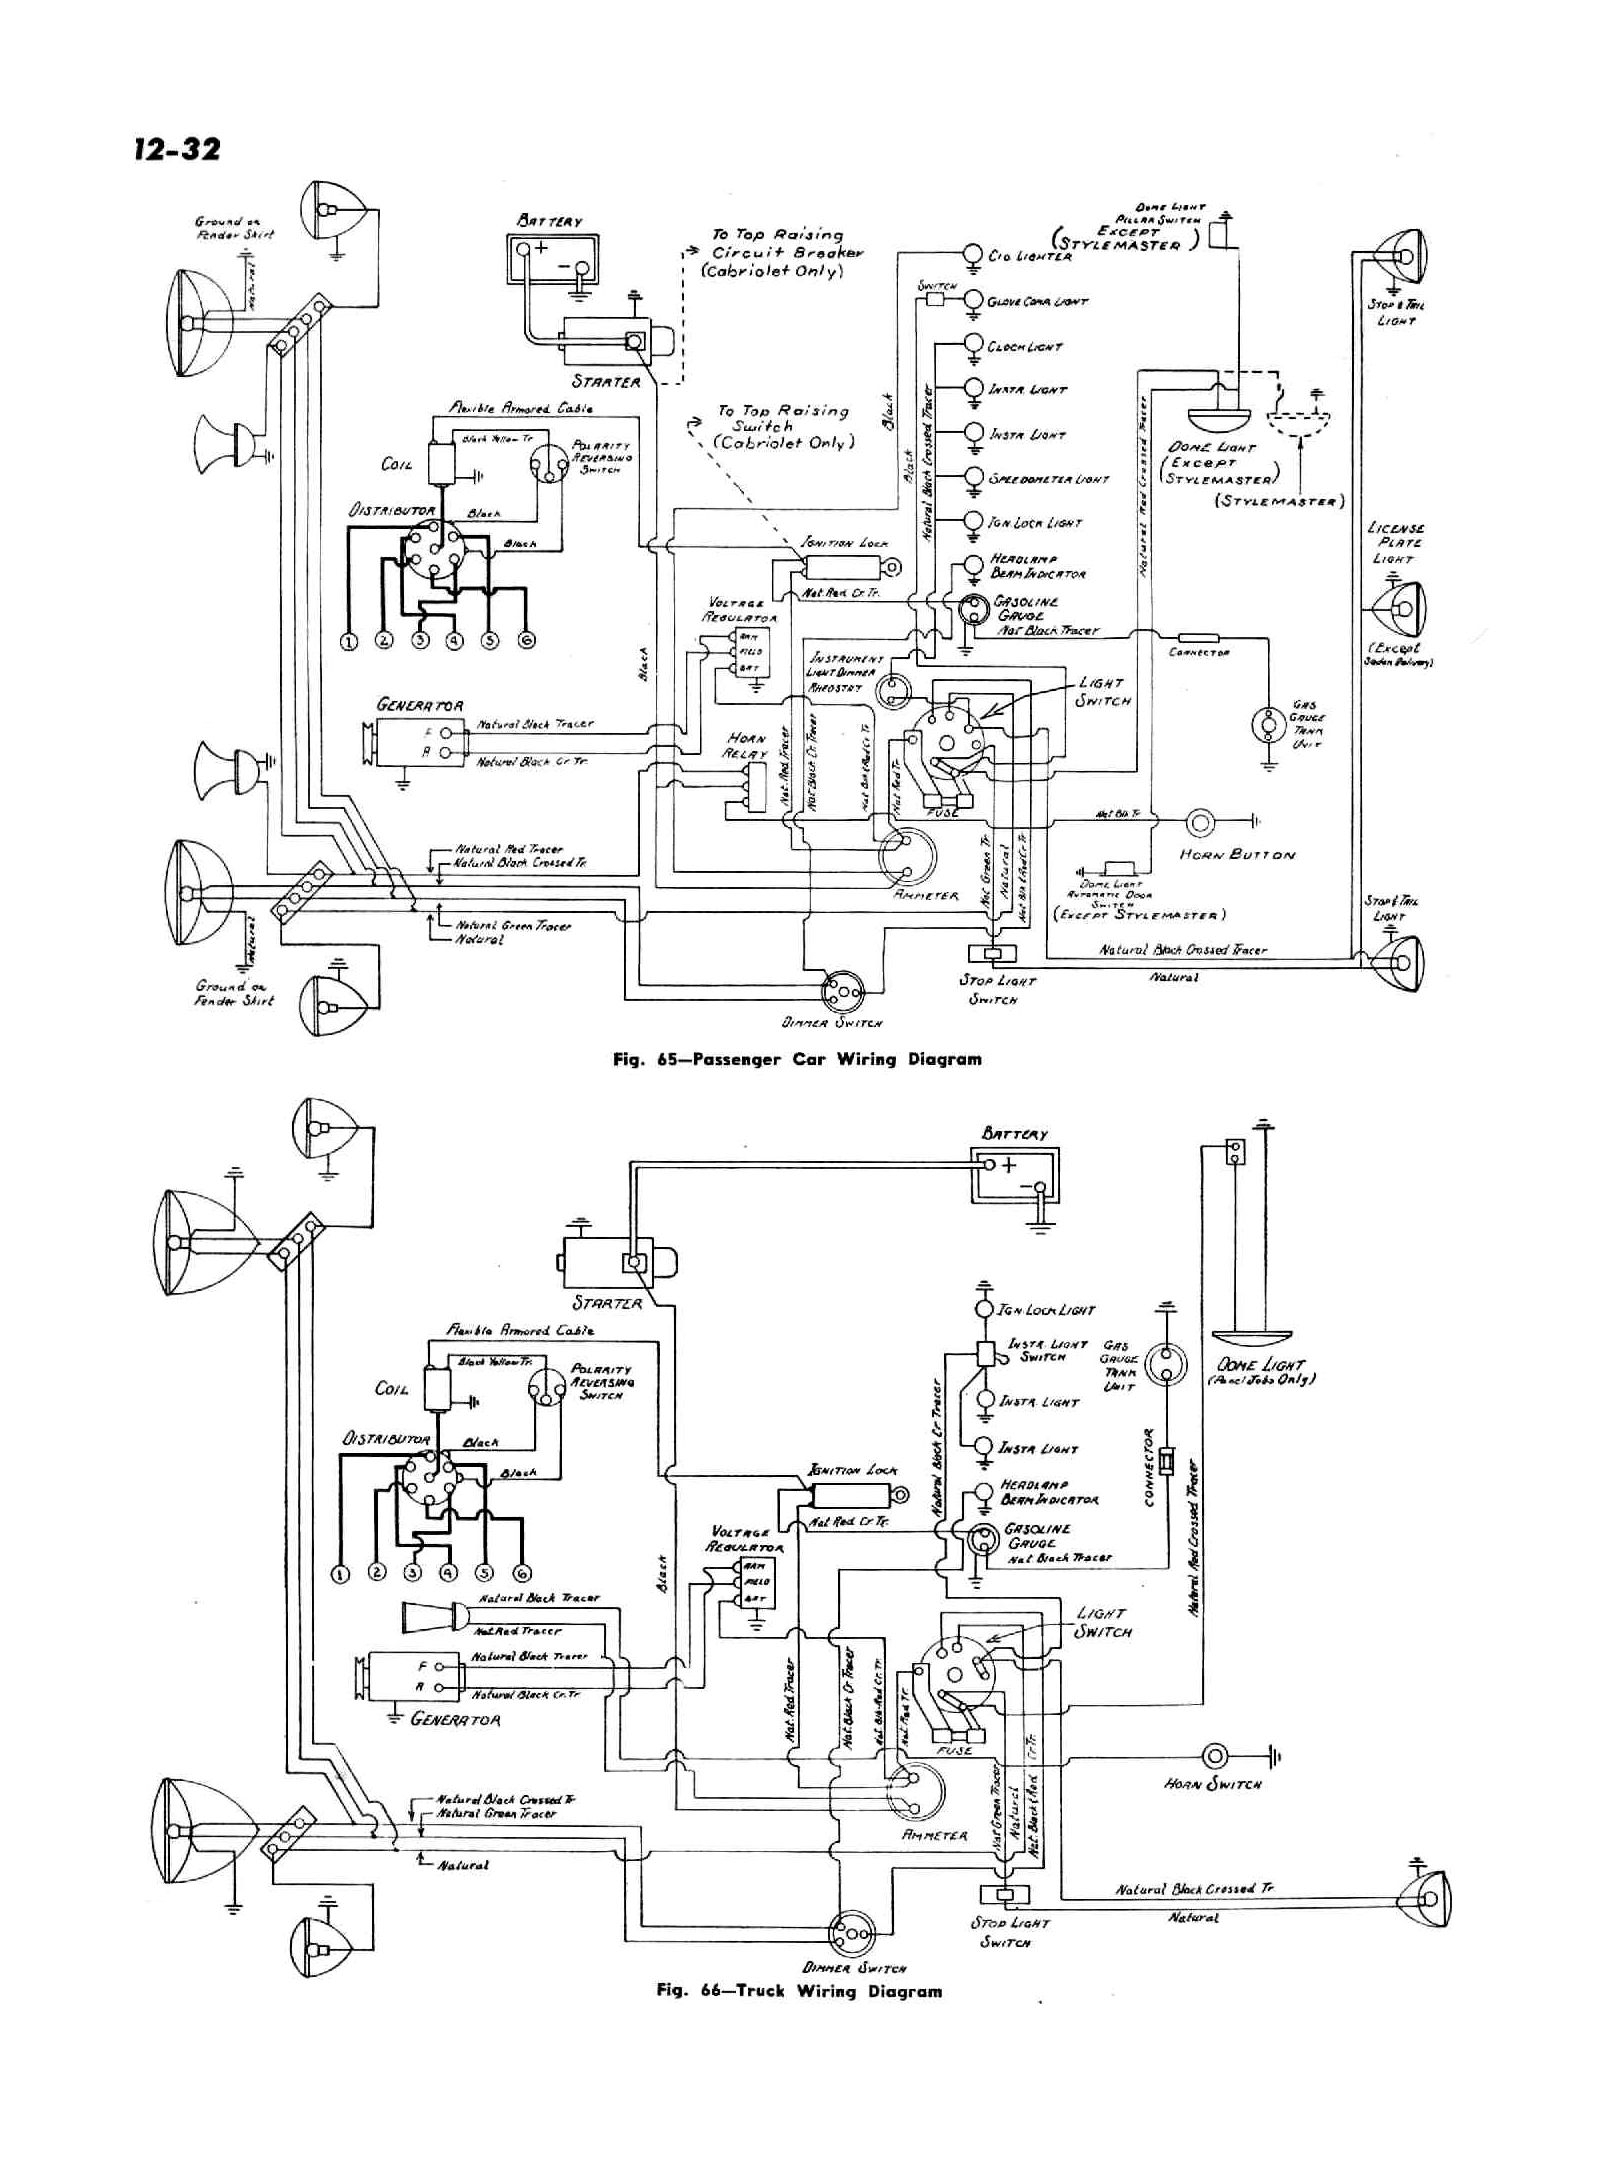 medium resolution of 656 light wiring diagram 2004 pontiac grand prix fuse box diagram wiring diagram elsalvadorla